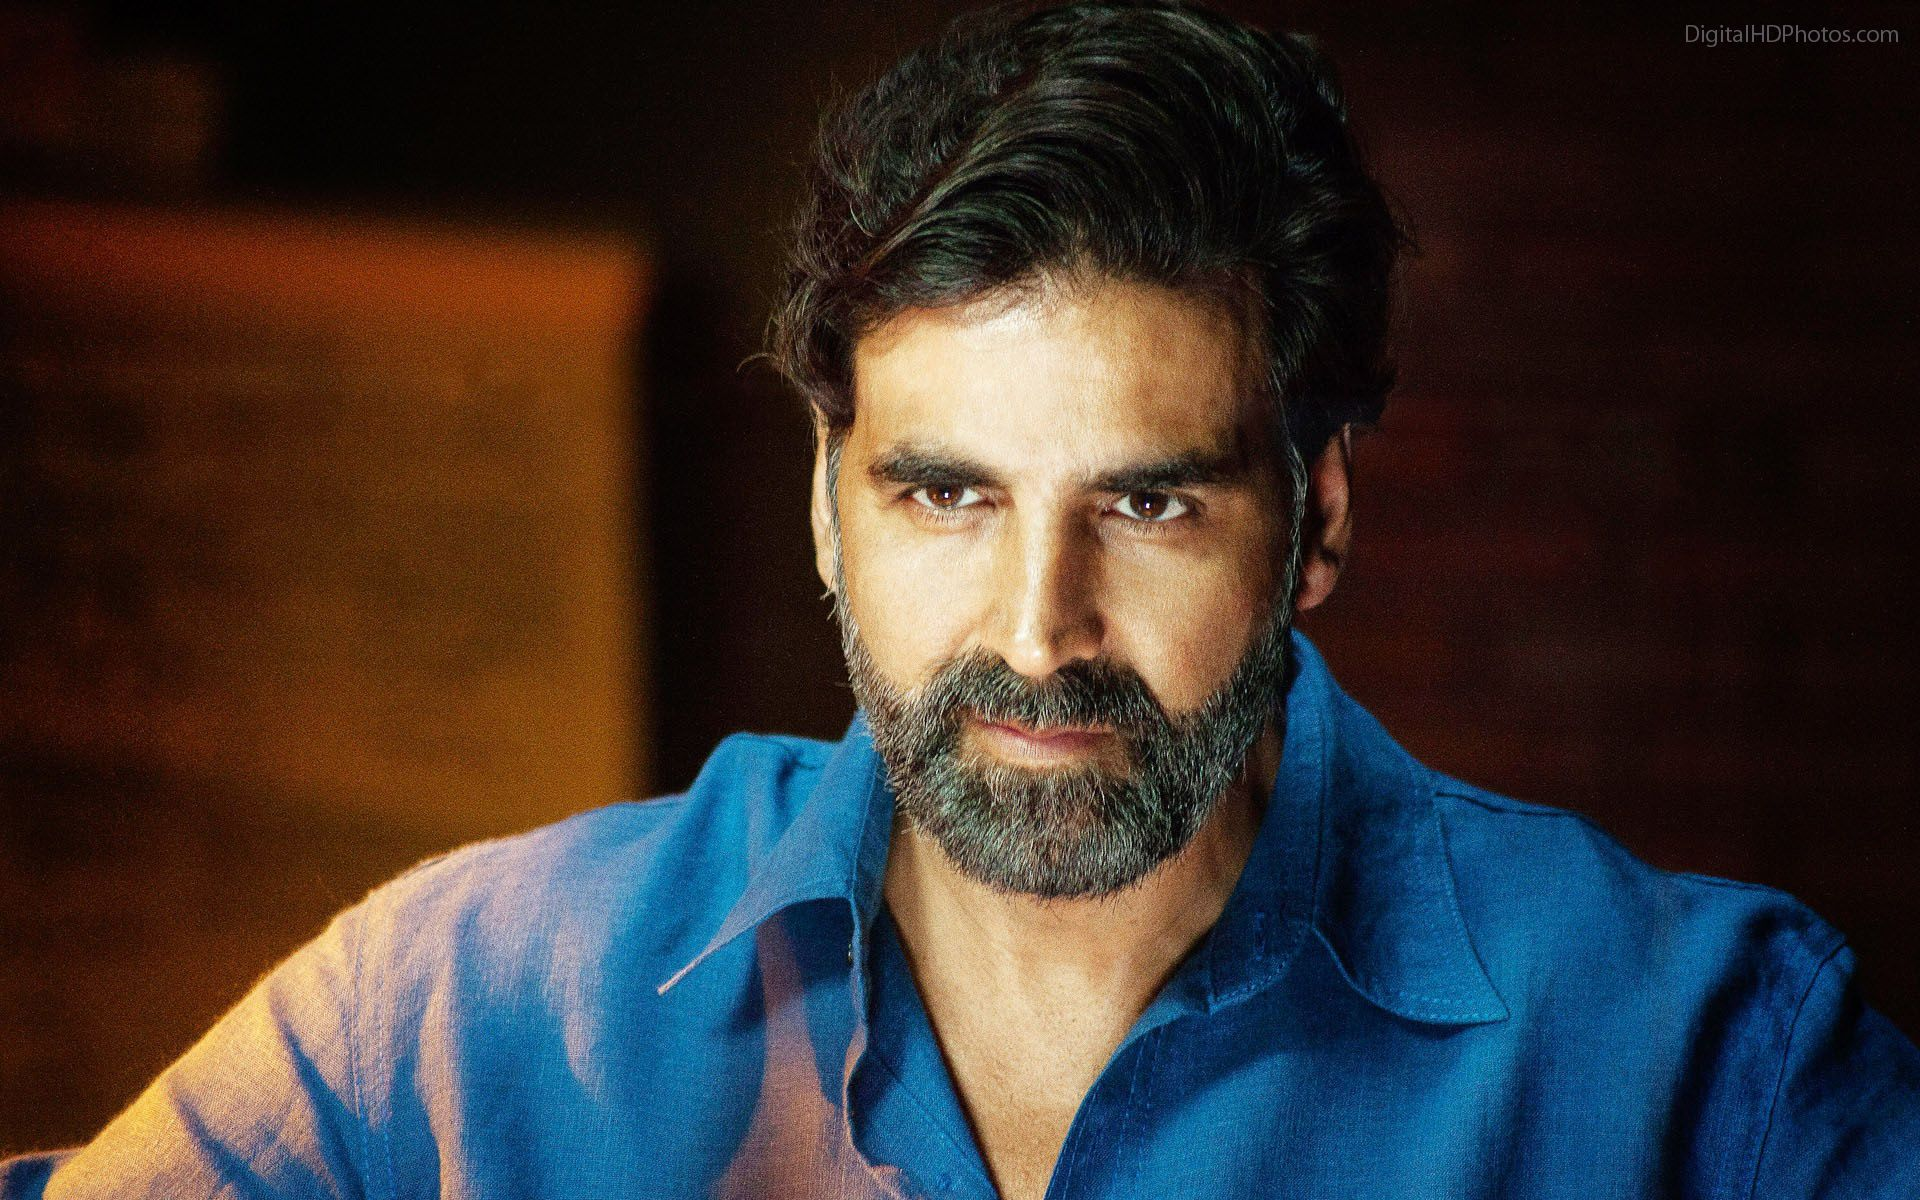 akshay kumar hd photos and wallpapers - digital hd photos | akshay